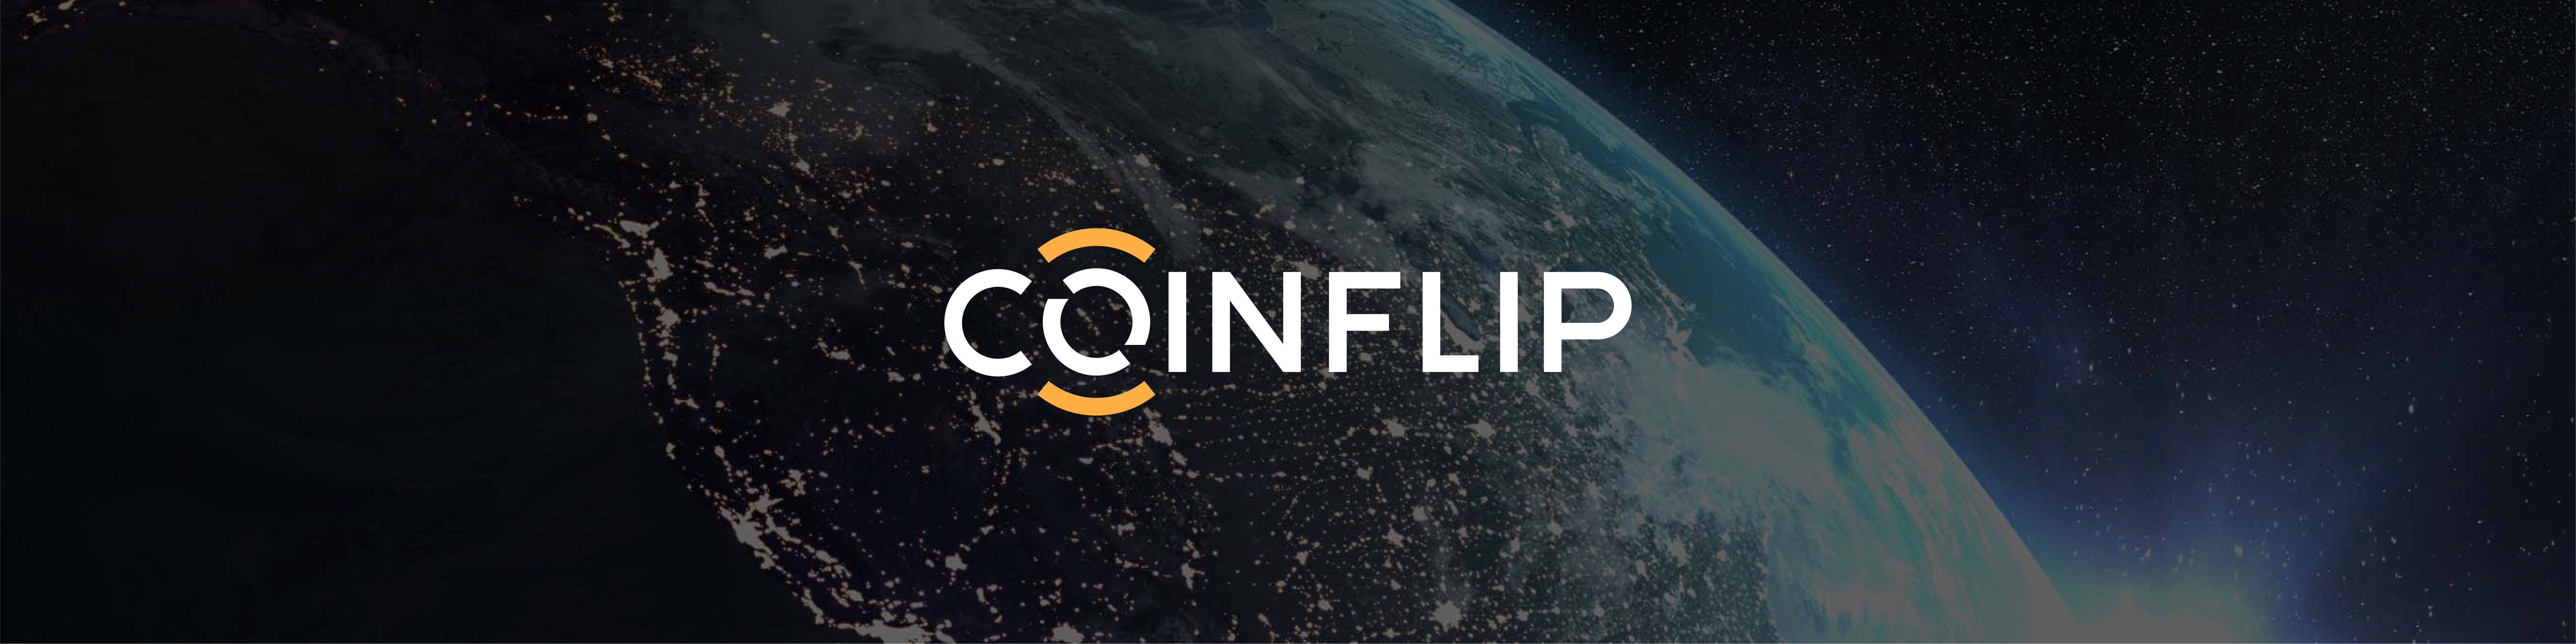 coinflip.tech twitter:image